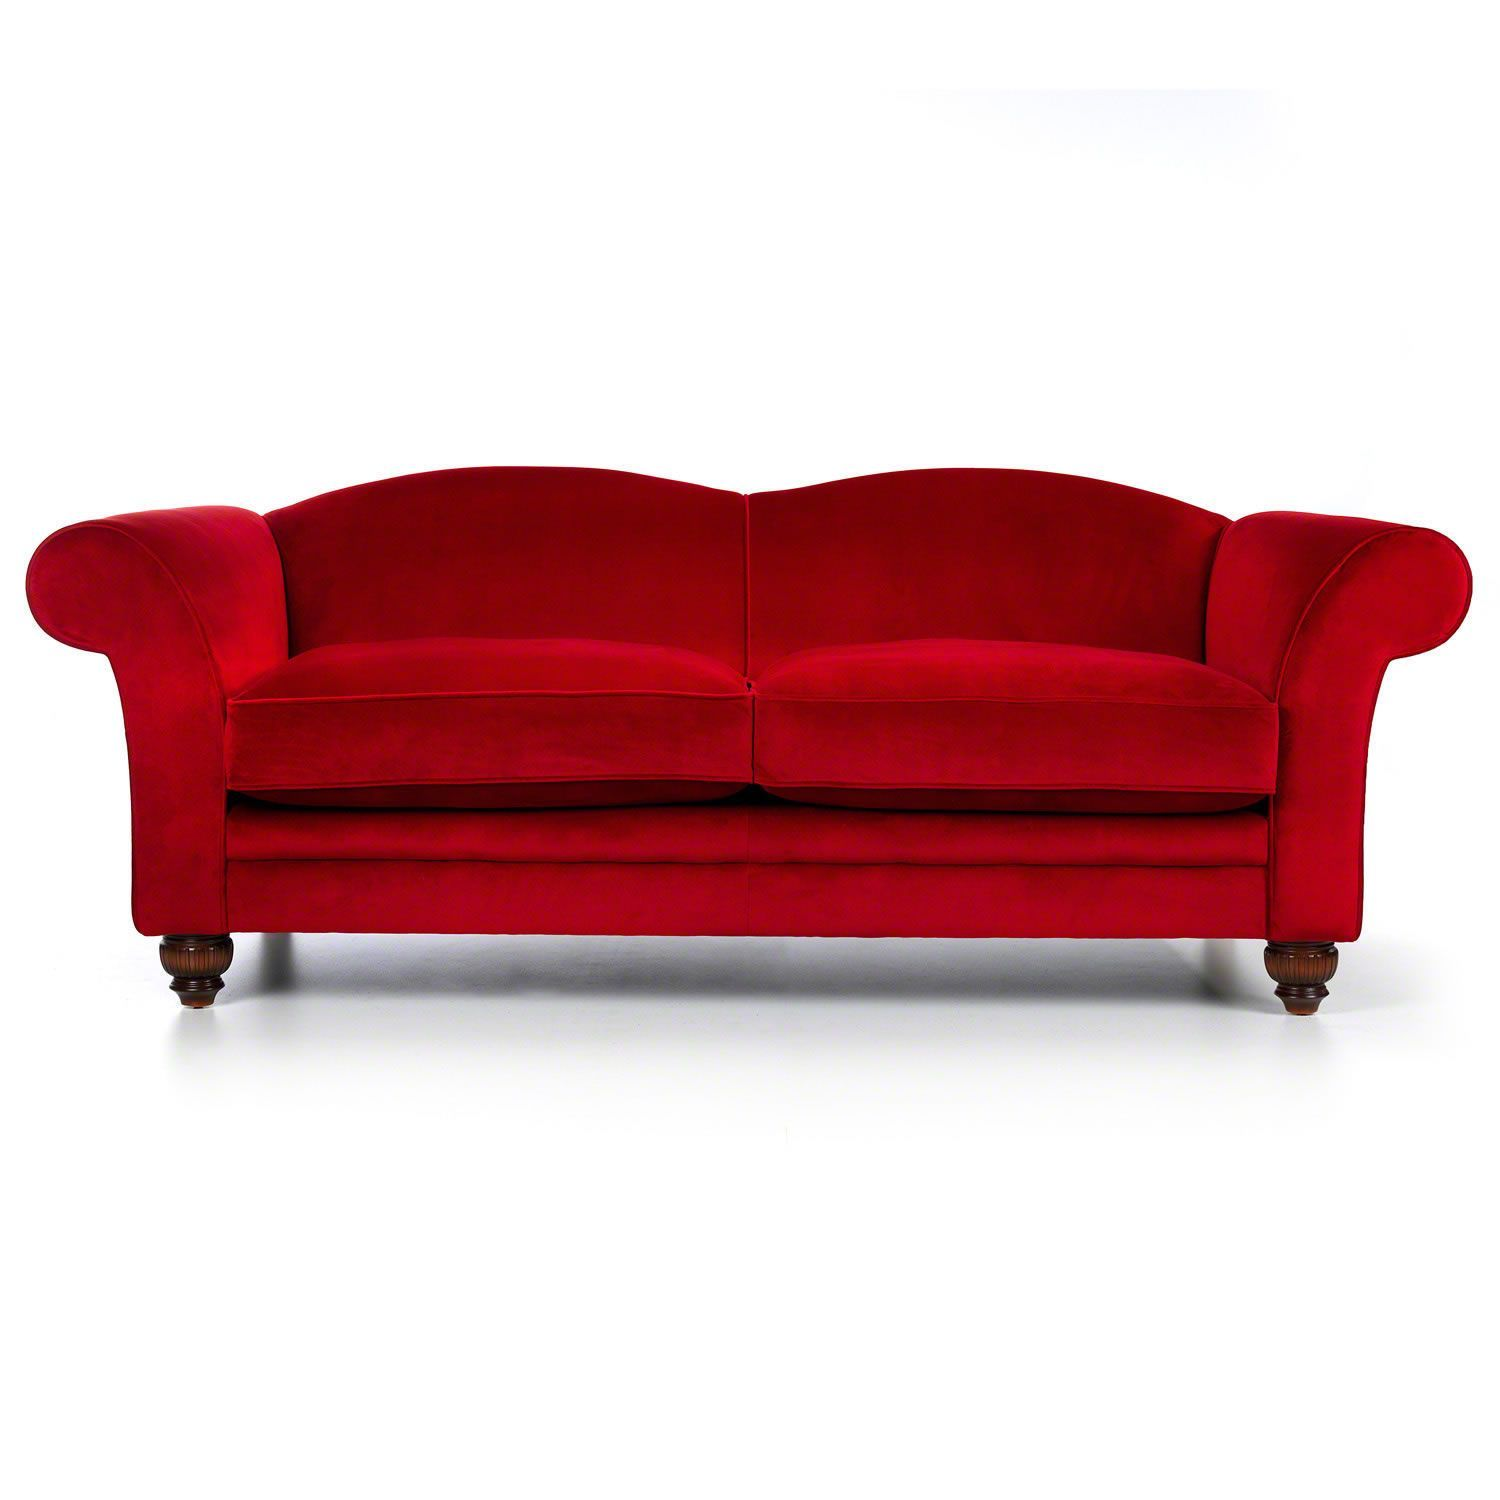 Bettsofa Chesterfield 20 Schöne Haferflocken Sofa Bett Sofa Mohammad Upholstered